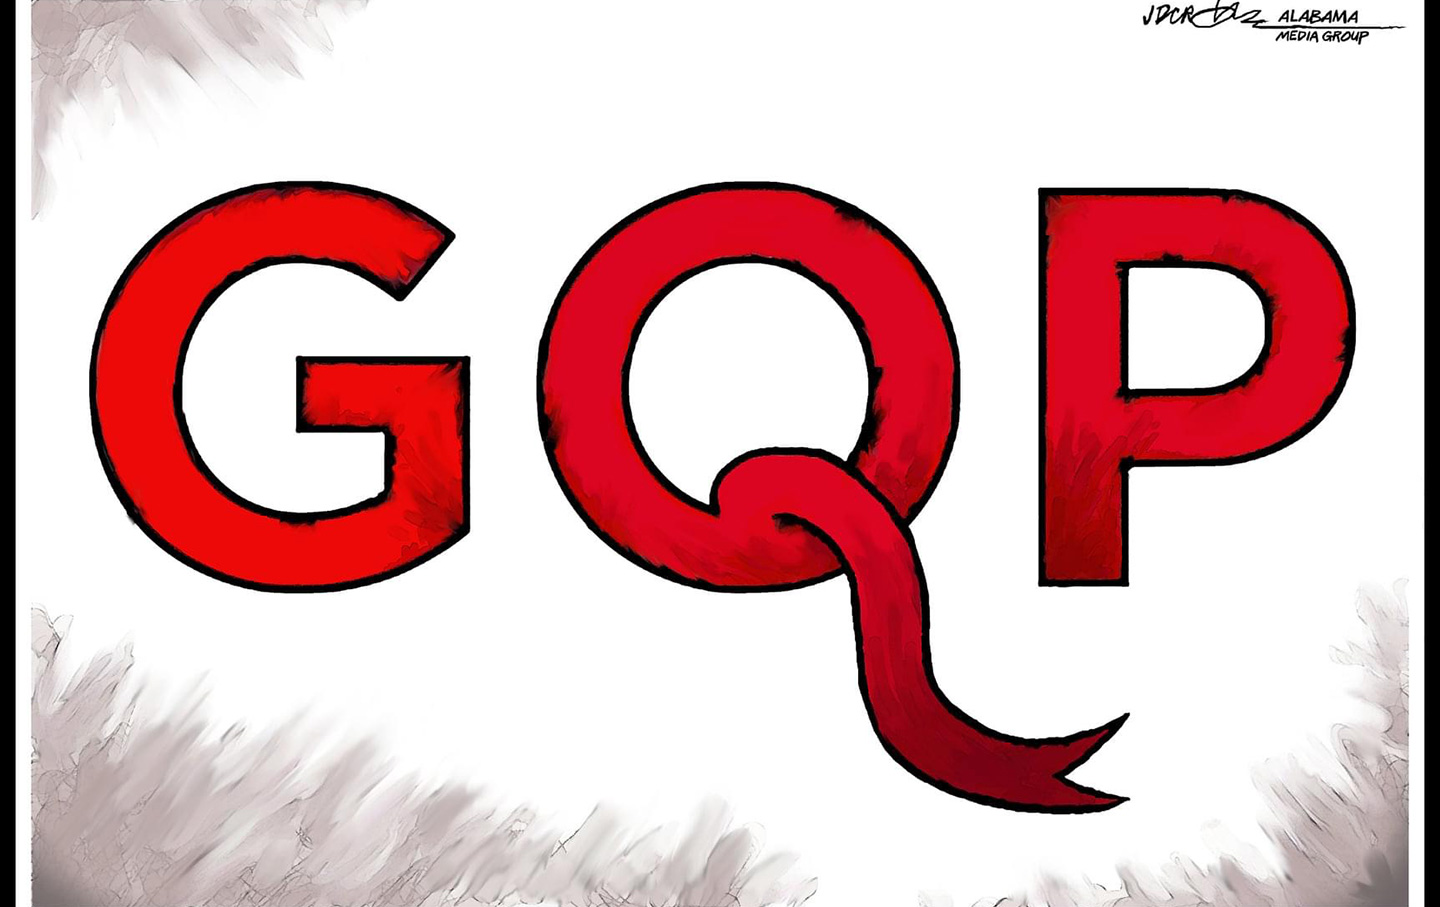 The Current GOP